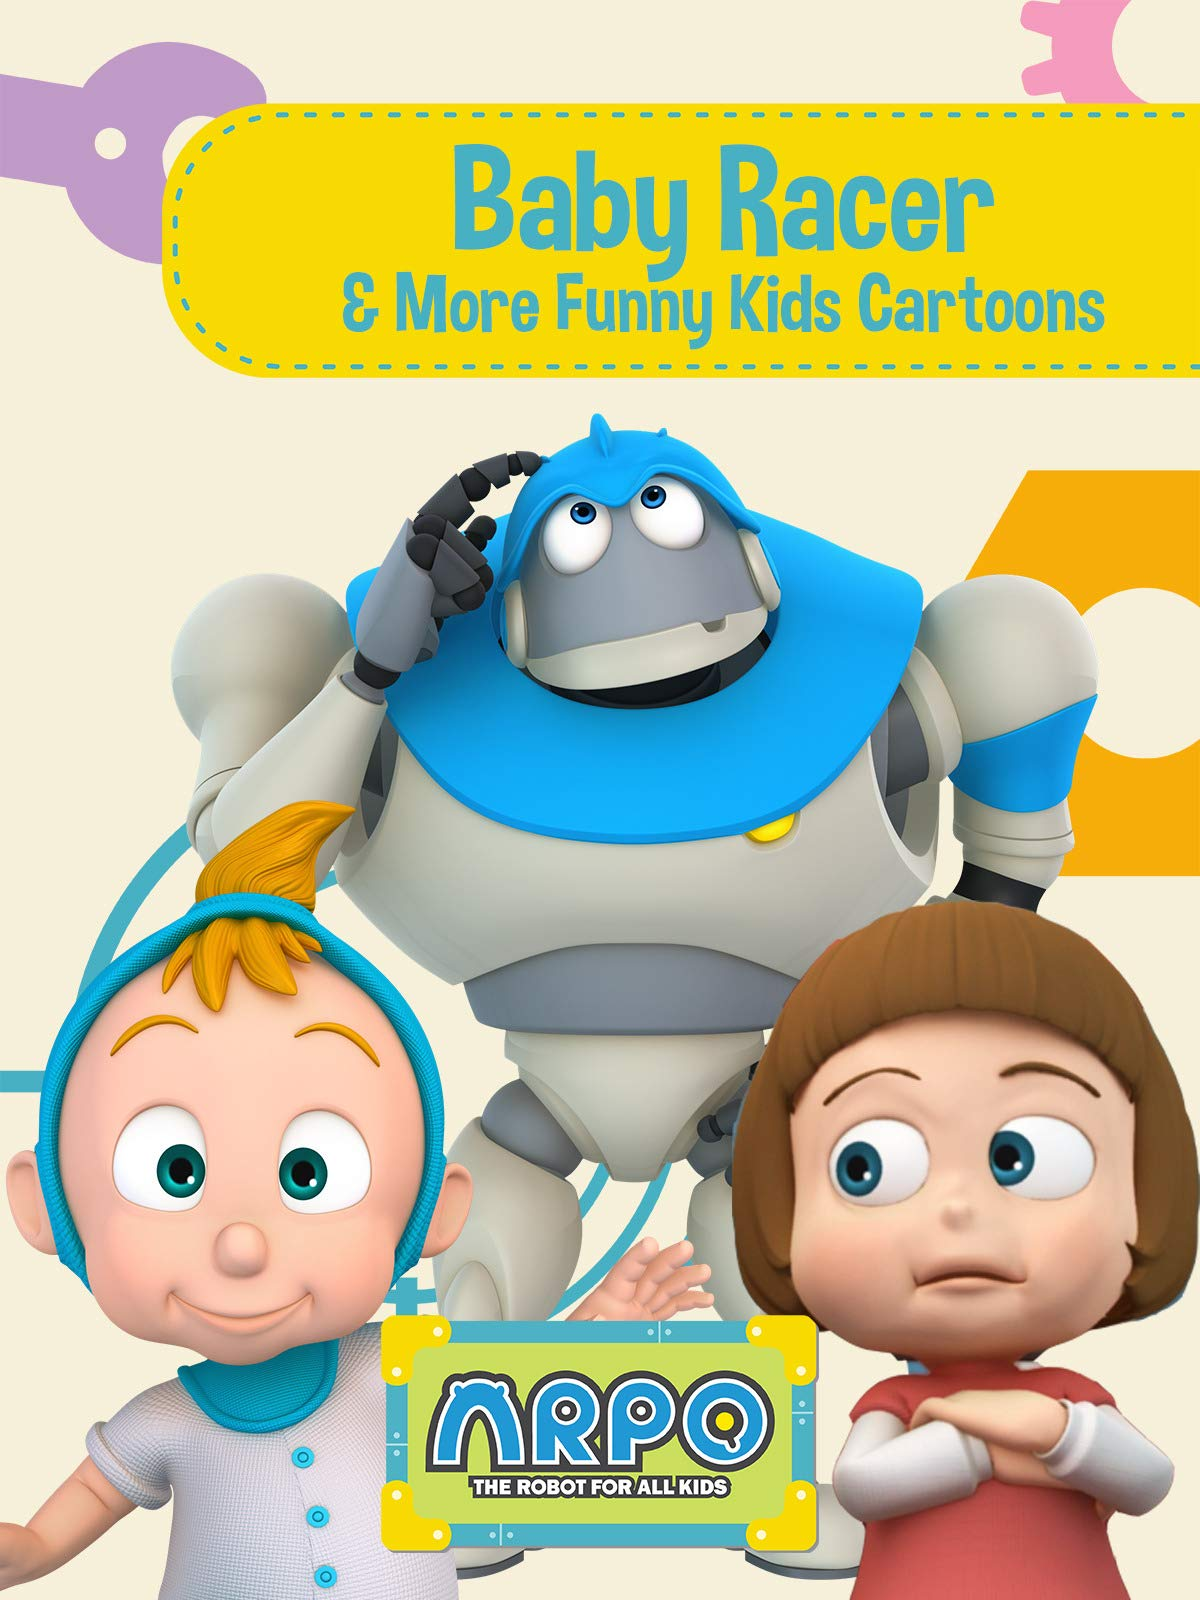 Arpo the Robot for All Kids - Baby Racer & More Funny Kids Cartoons on Amazon Prime Video UK